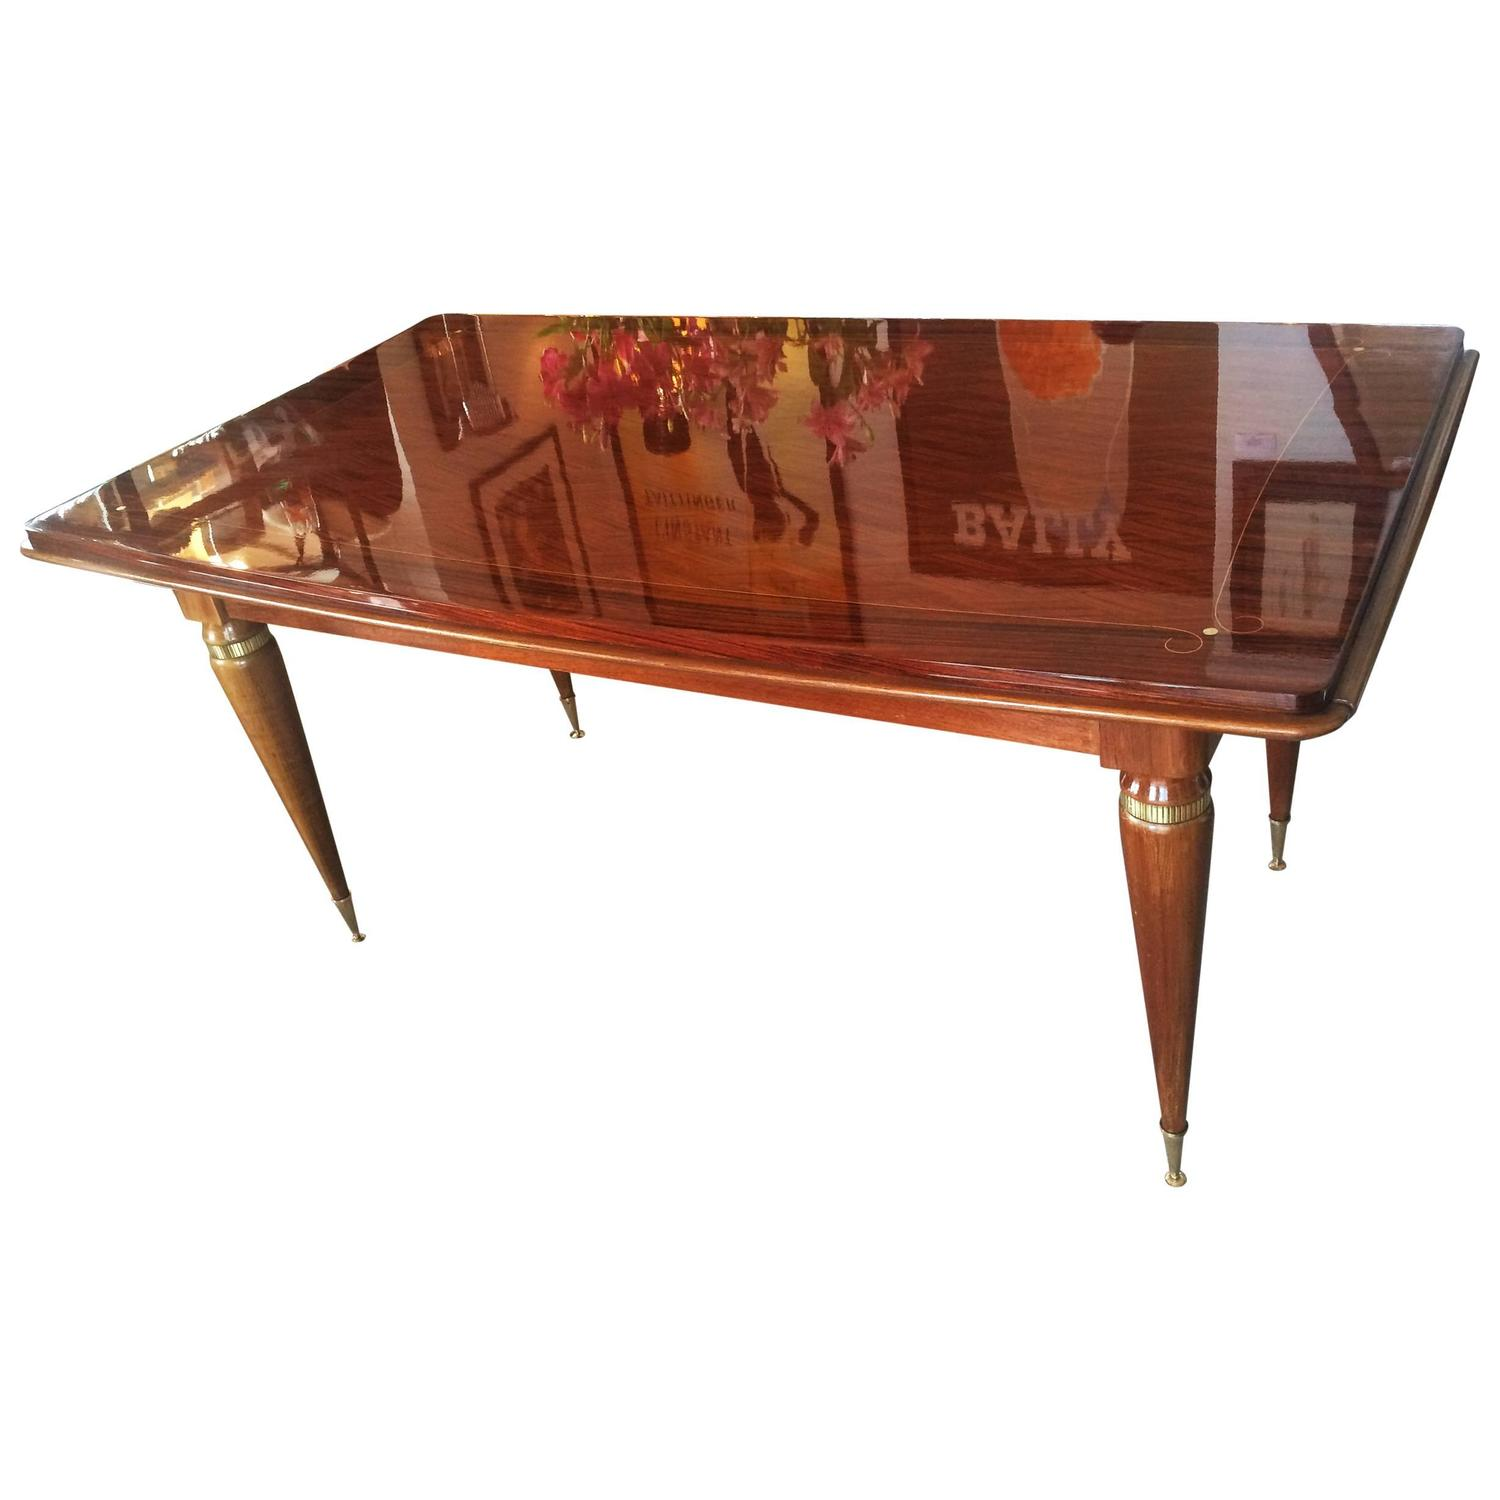 Art deco french extension dining table at 1stdibs - Art deco dining room table ...